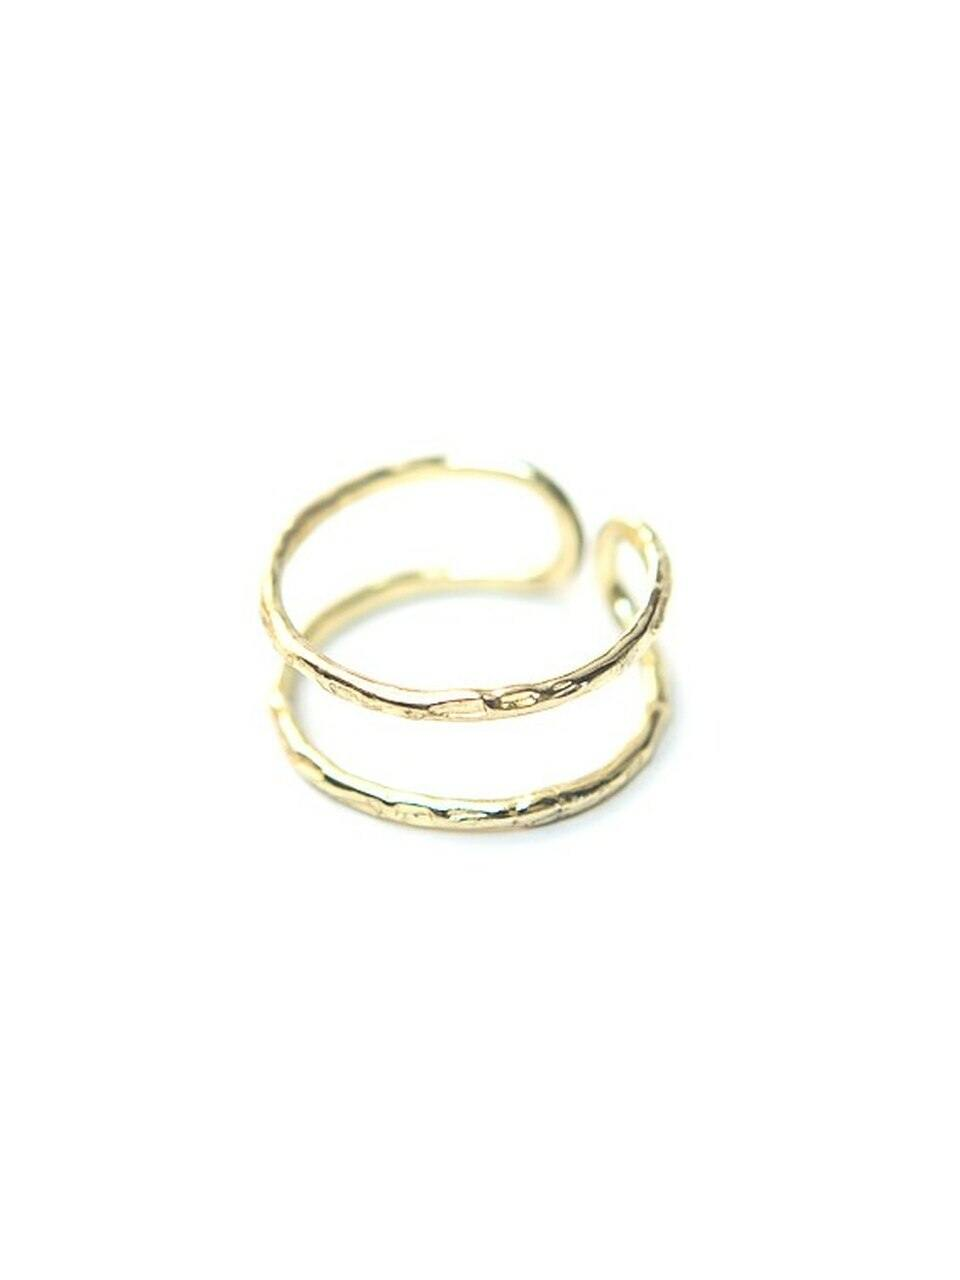 Illusion Ring, Brass